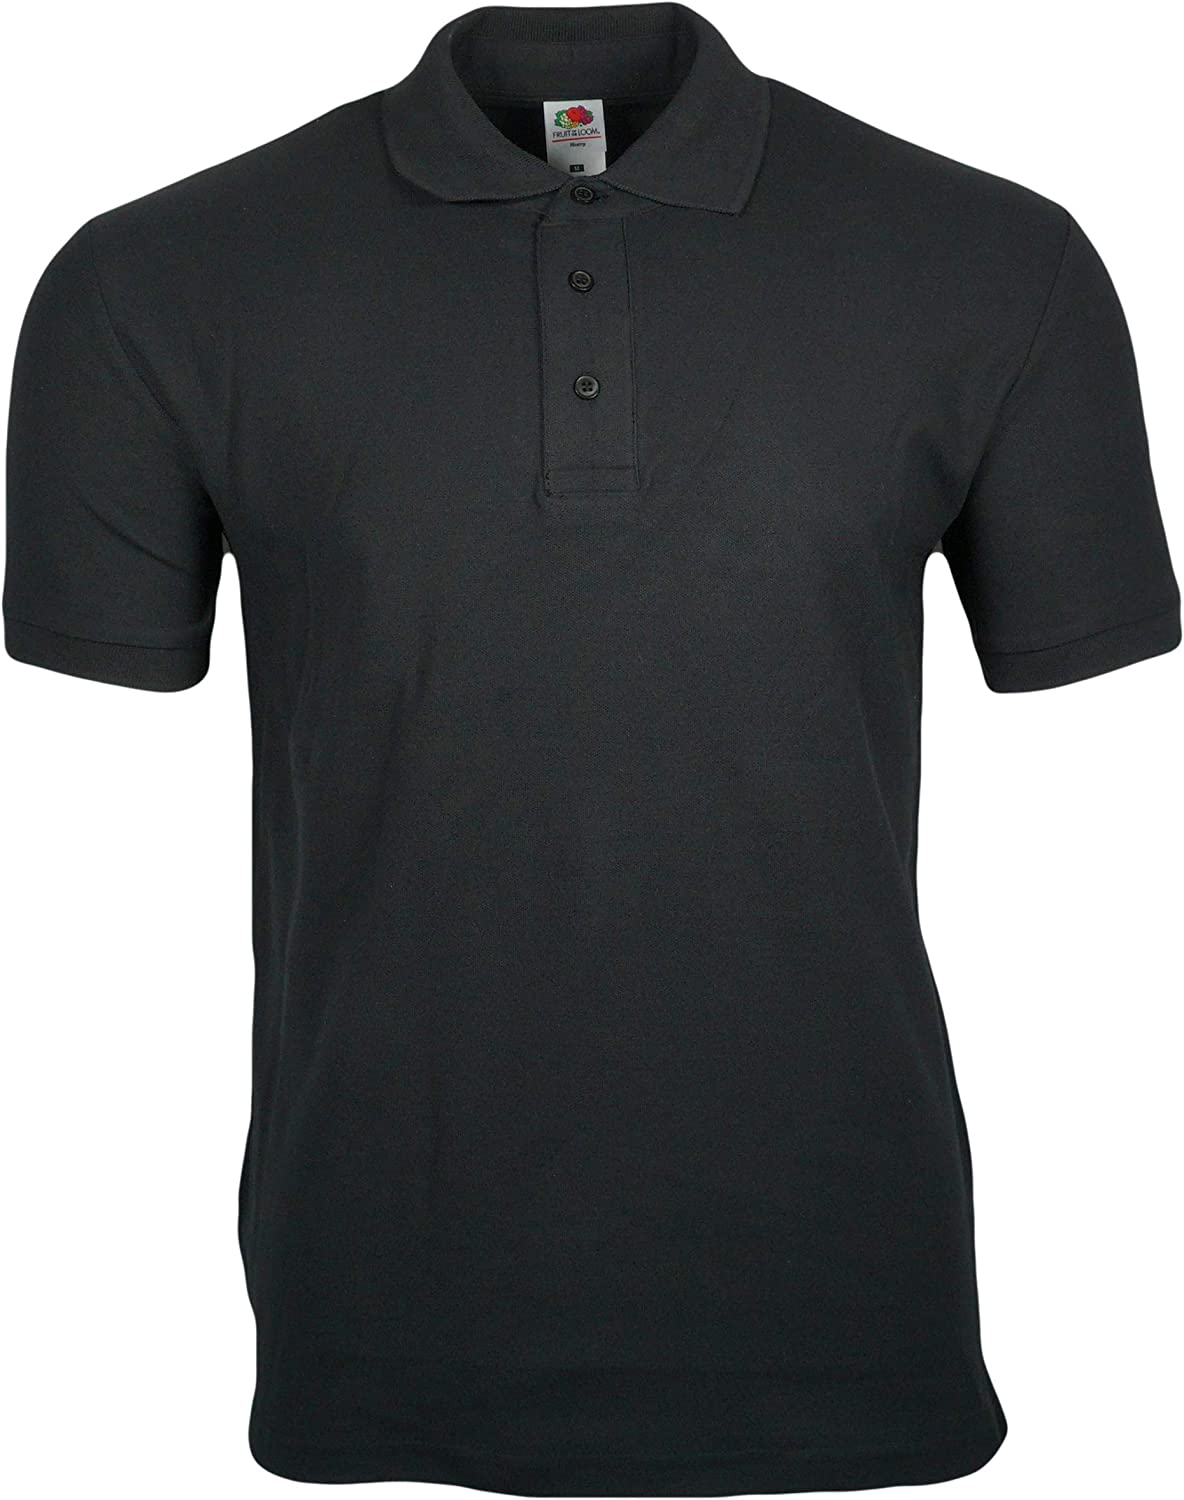 Fruit of the Loom Short-sleeved Polo Shirt